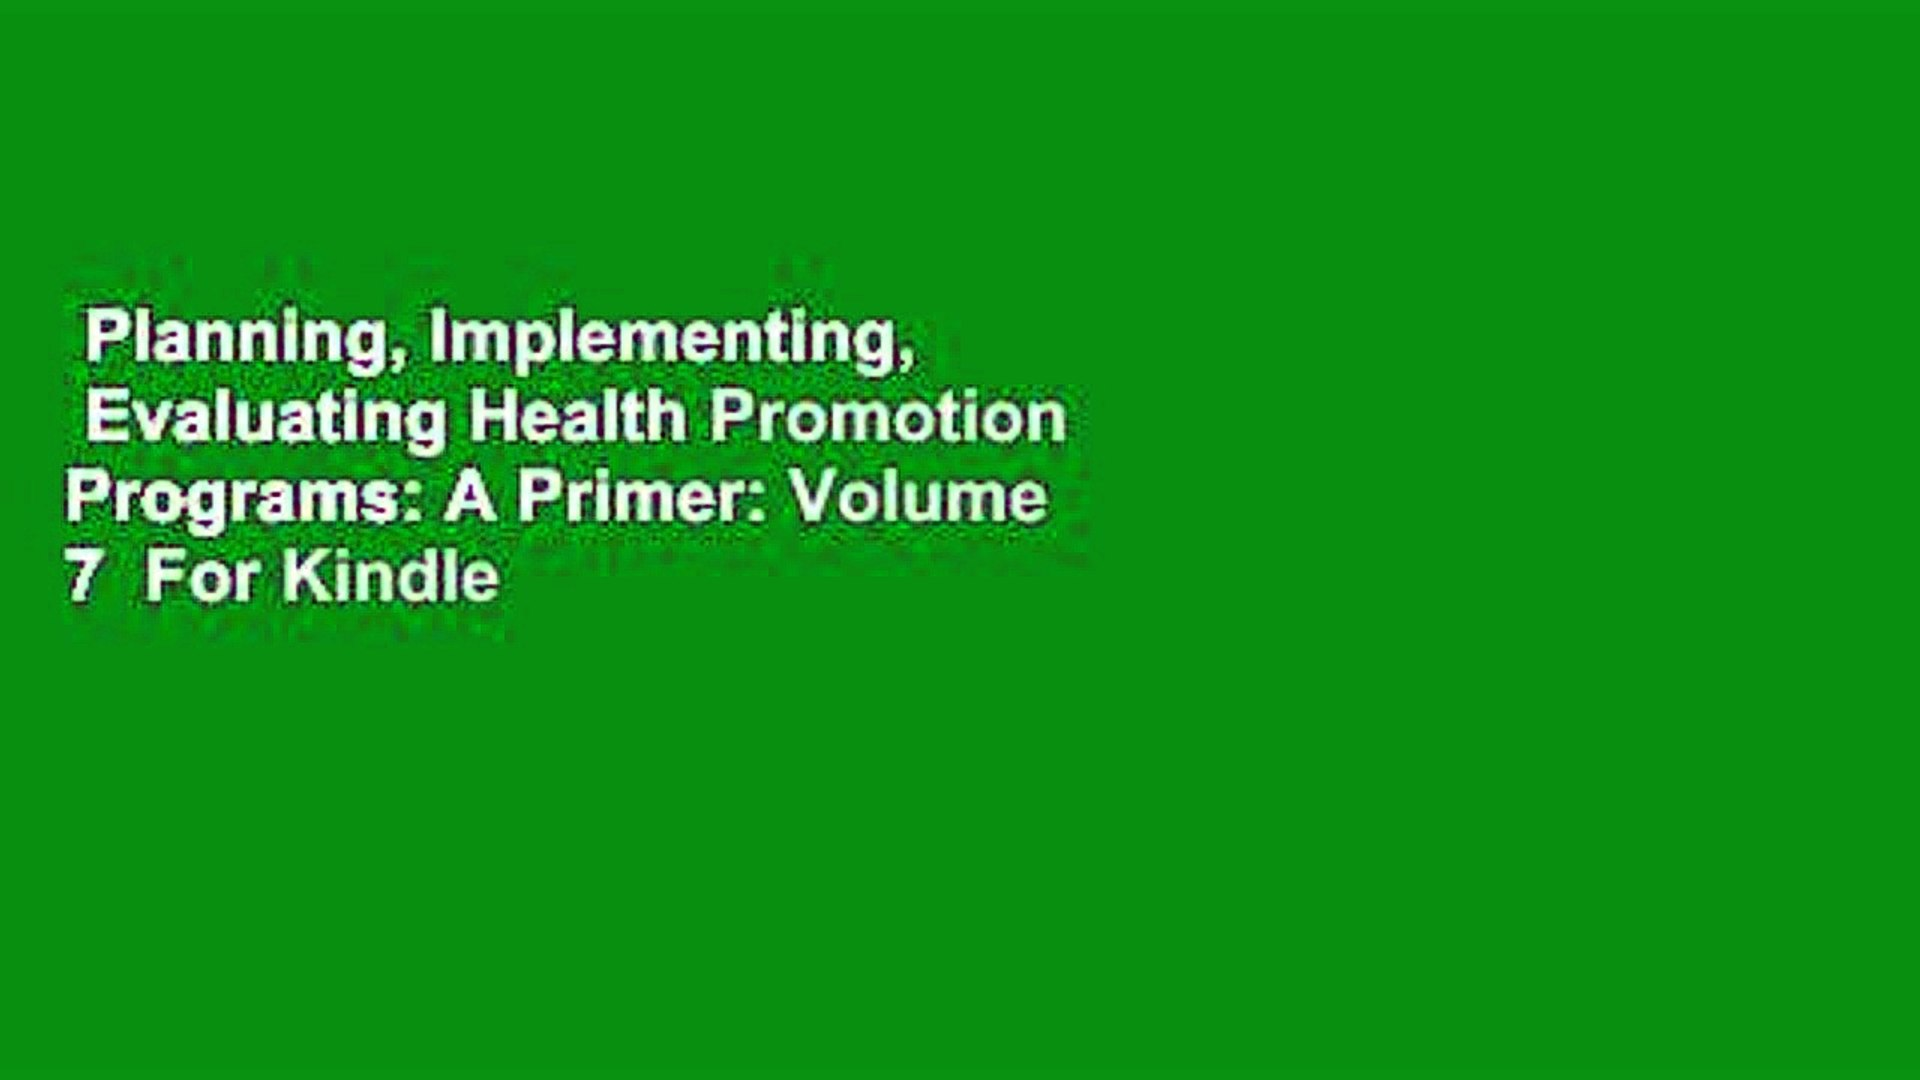 Planning, Implementing, Evaluating Health Promotion Programs: A Primer:  Volume 7 For Kindle